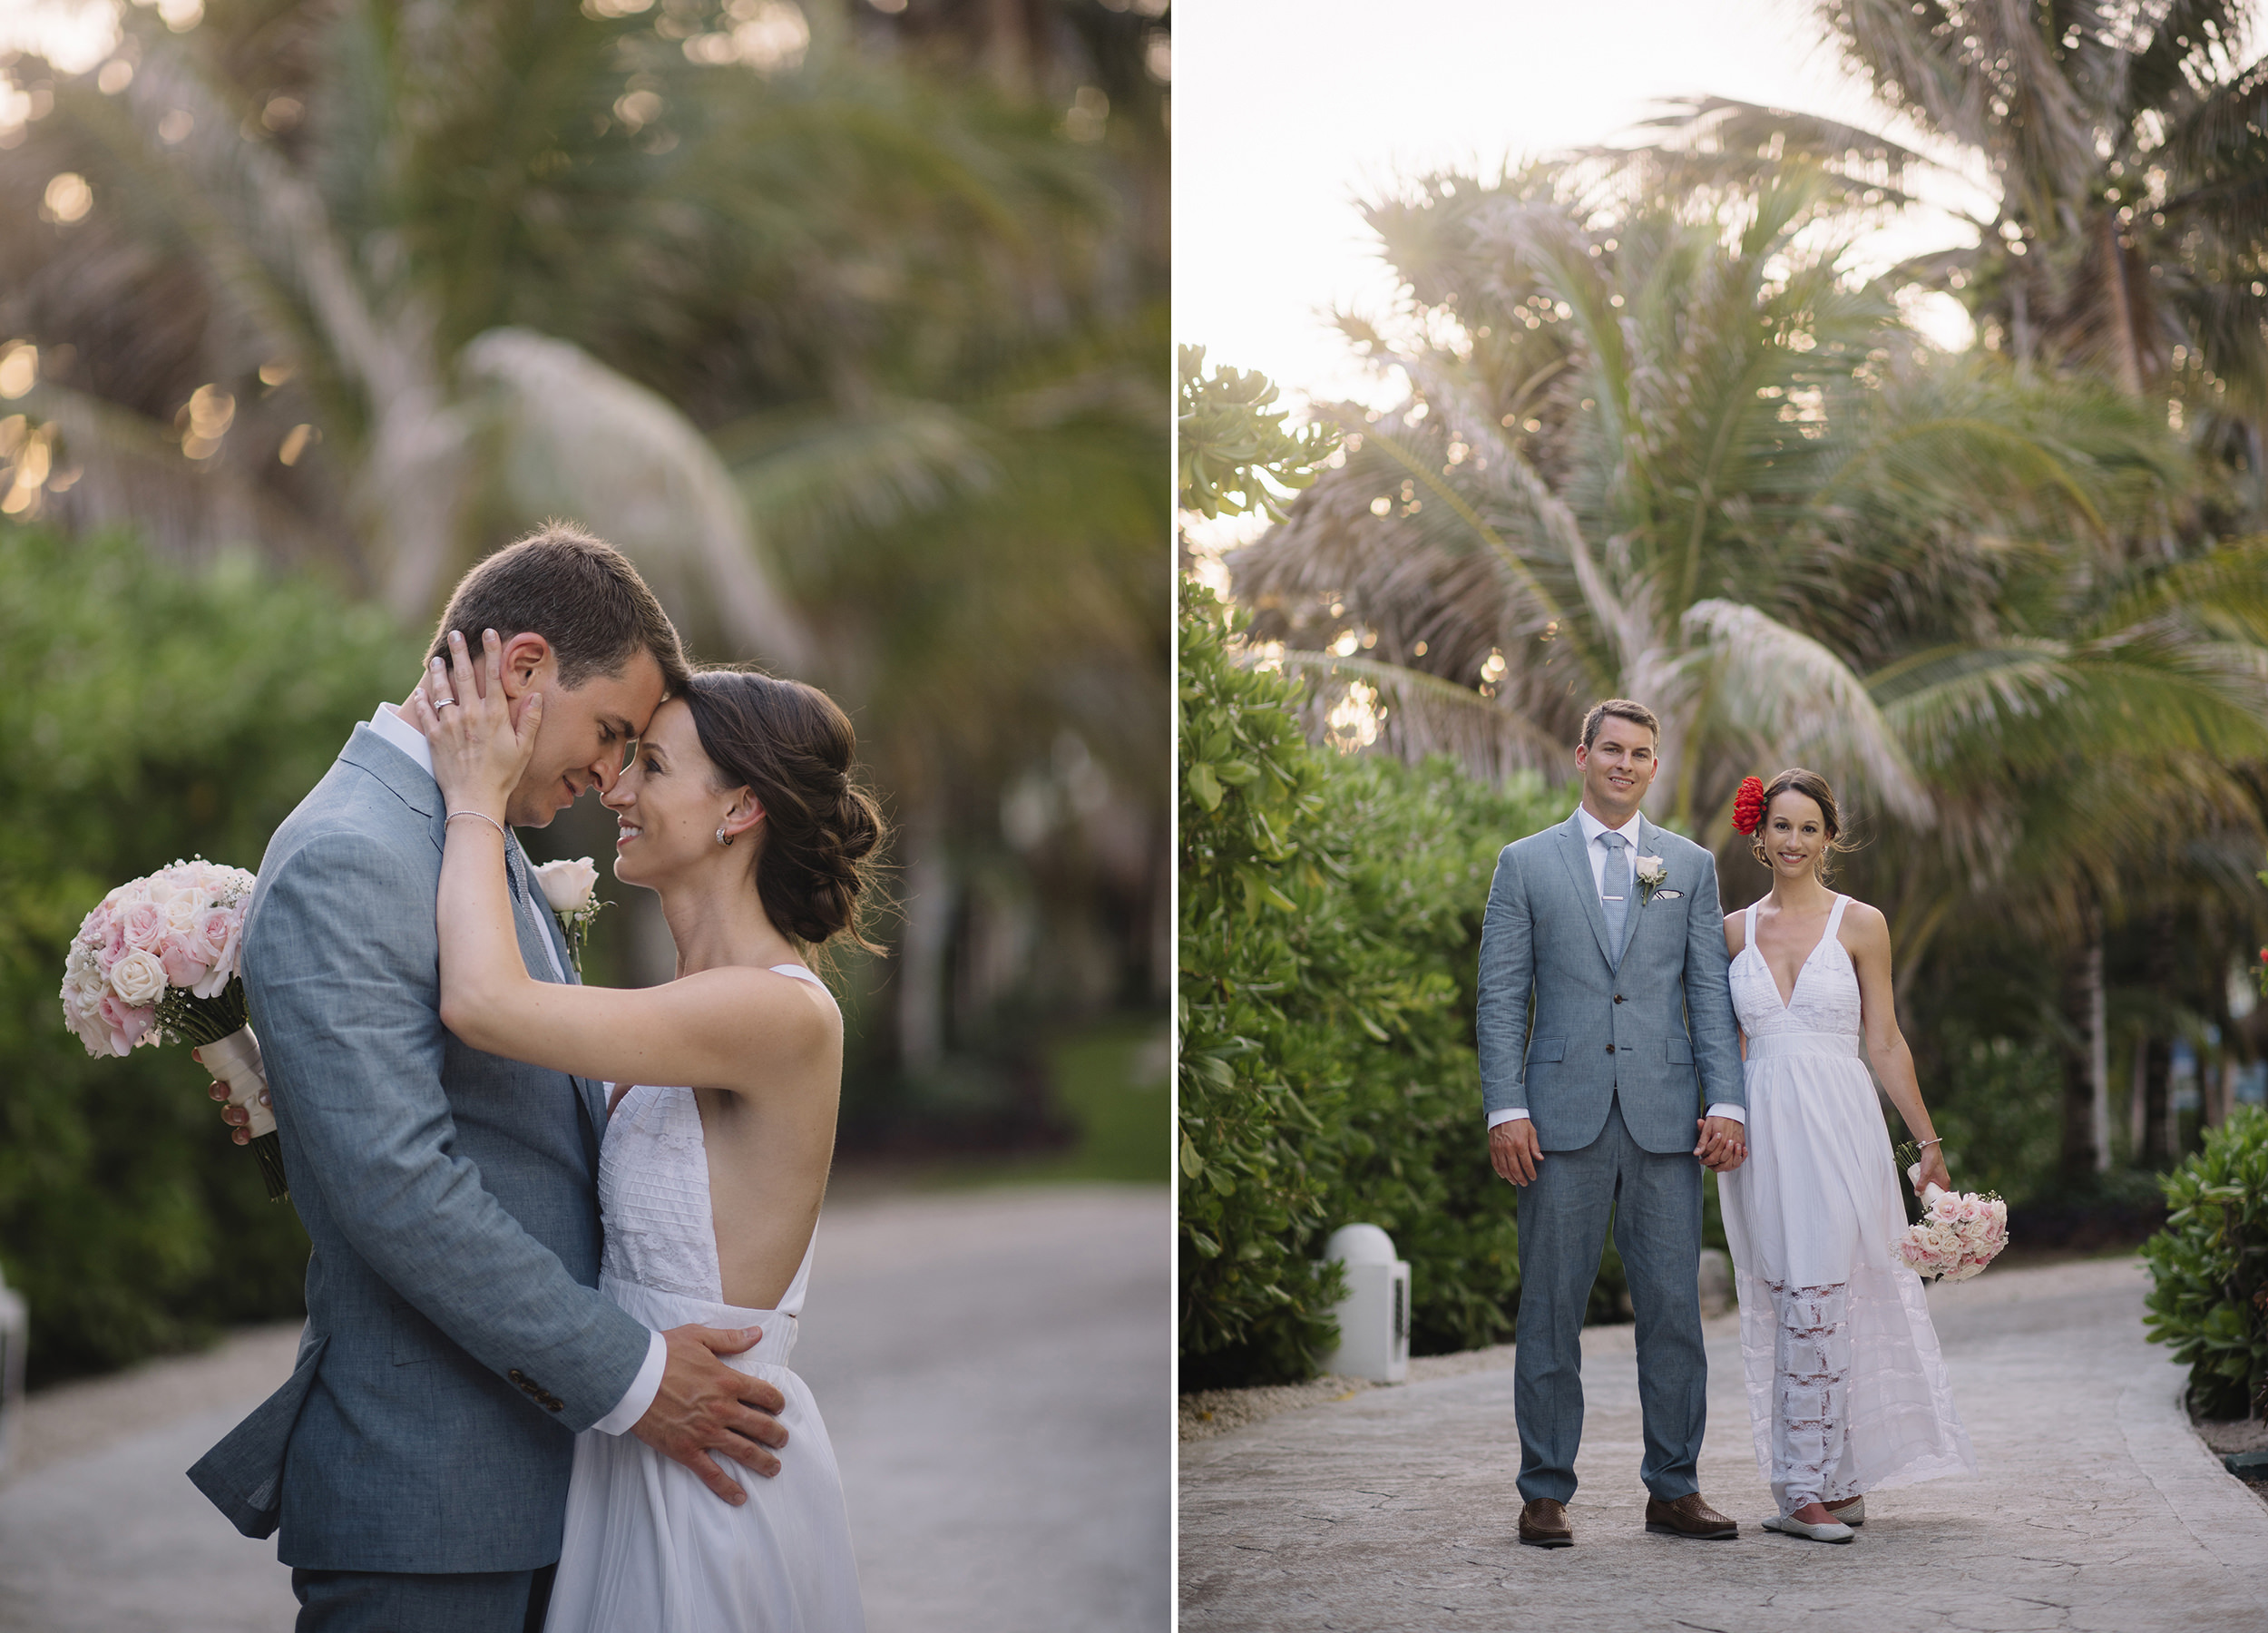 Colby-and-Jess-Intimate-Beach-Wedding-Destination-Cancun-Mexico267.jpg